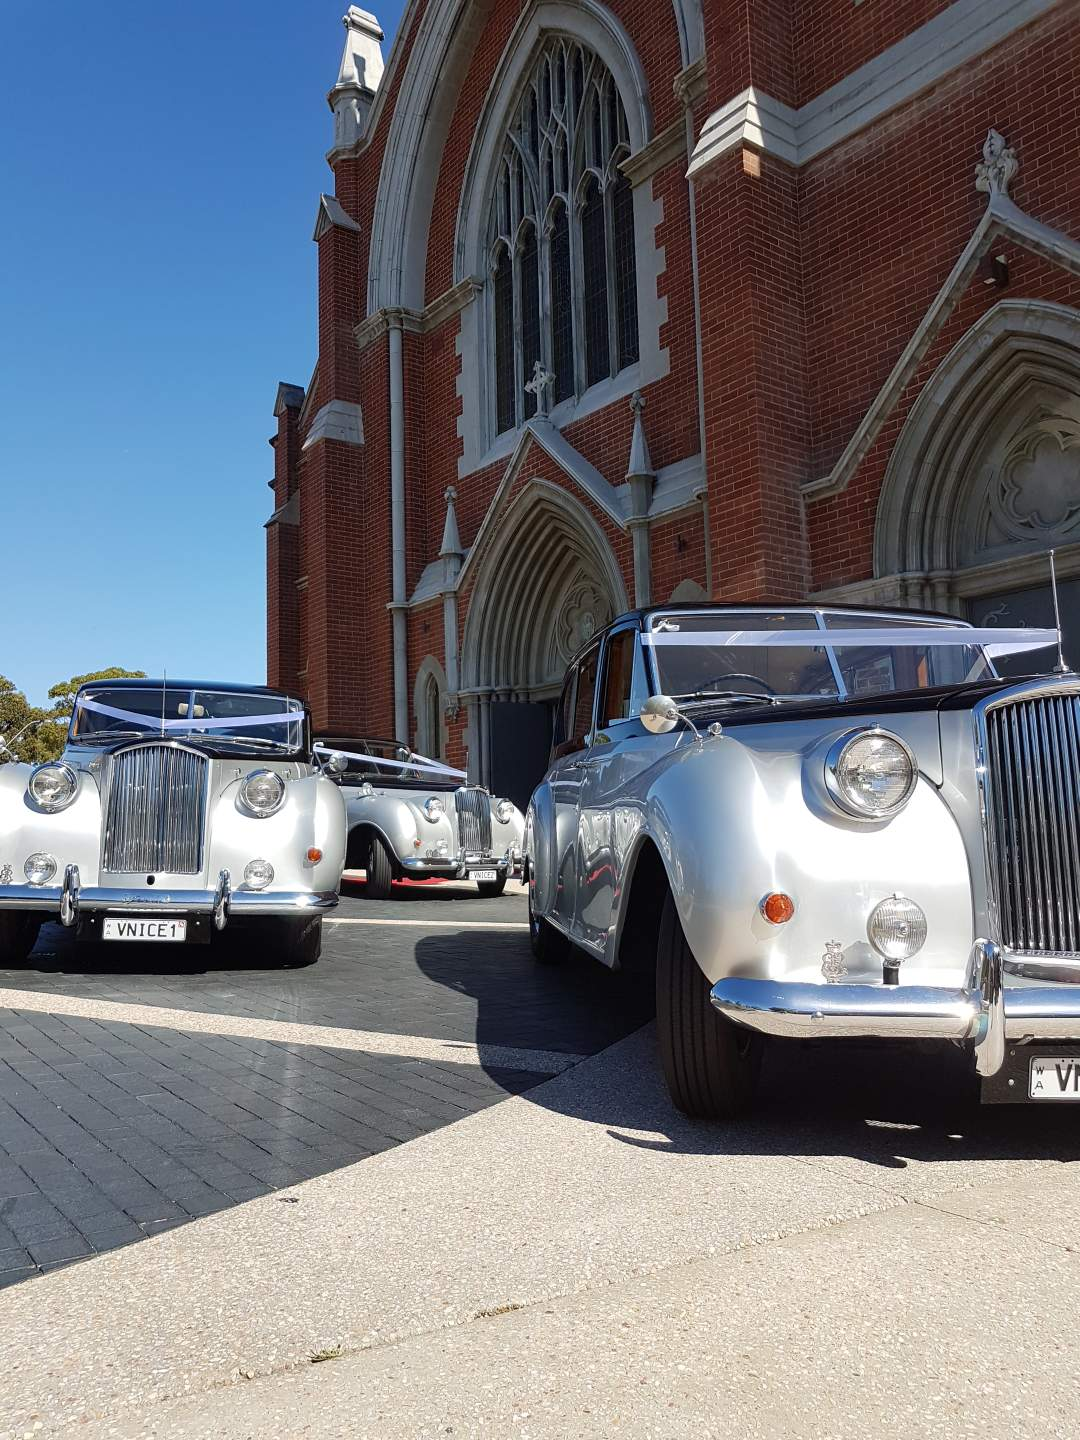 3-very-nice-classics-wedding-cars-in-perth-in-front-of-church.jpeg